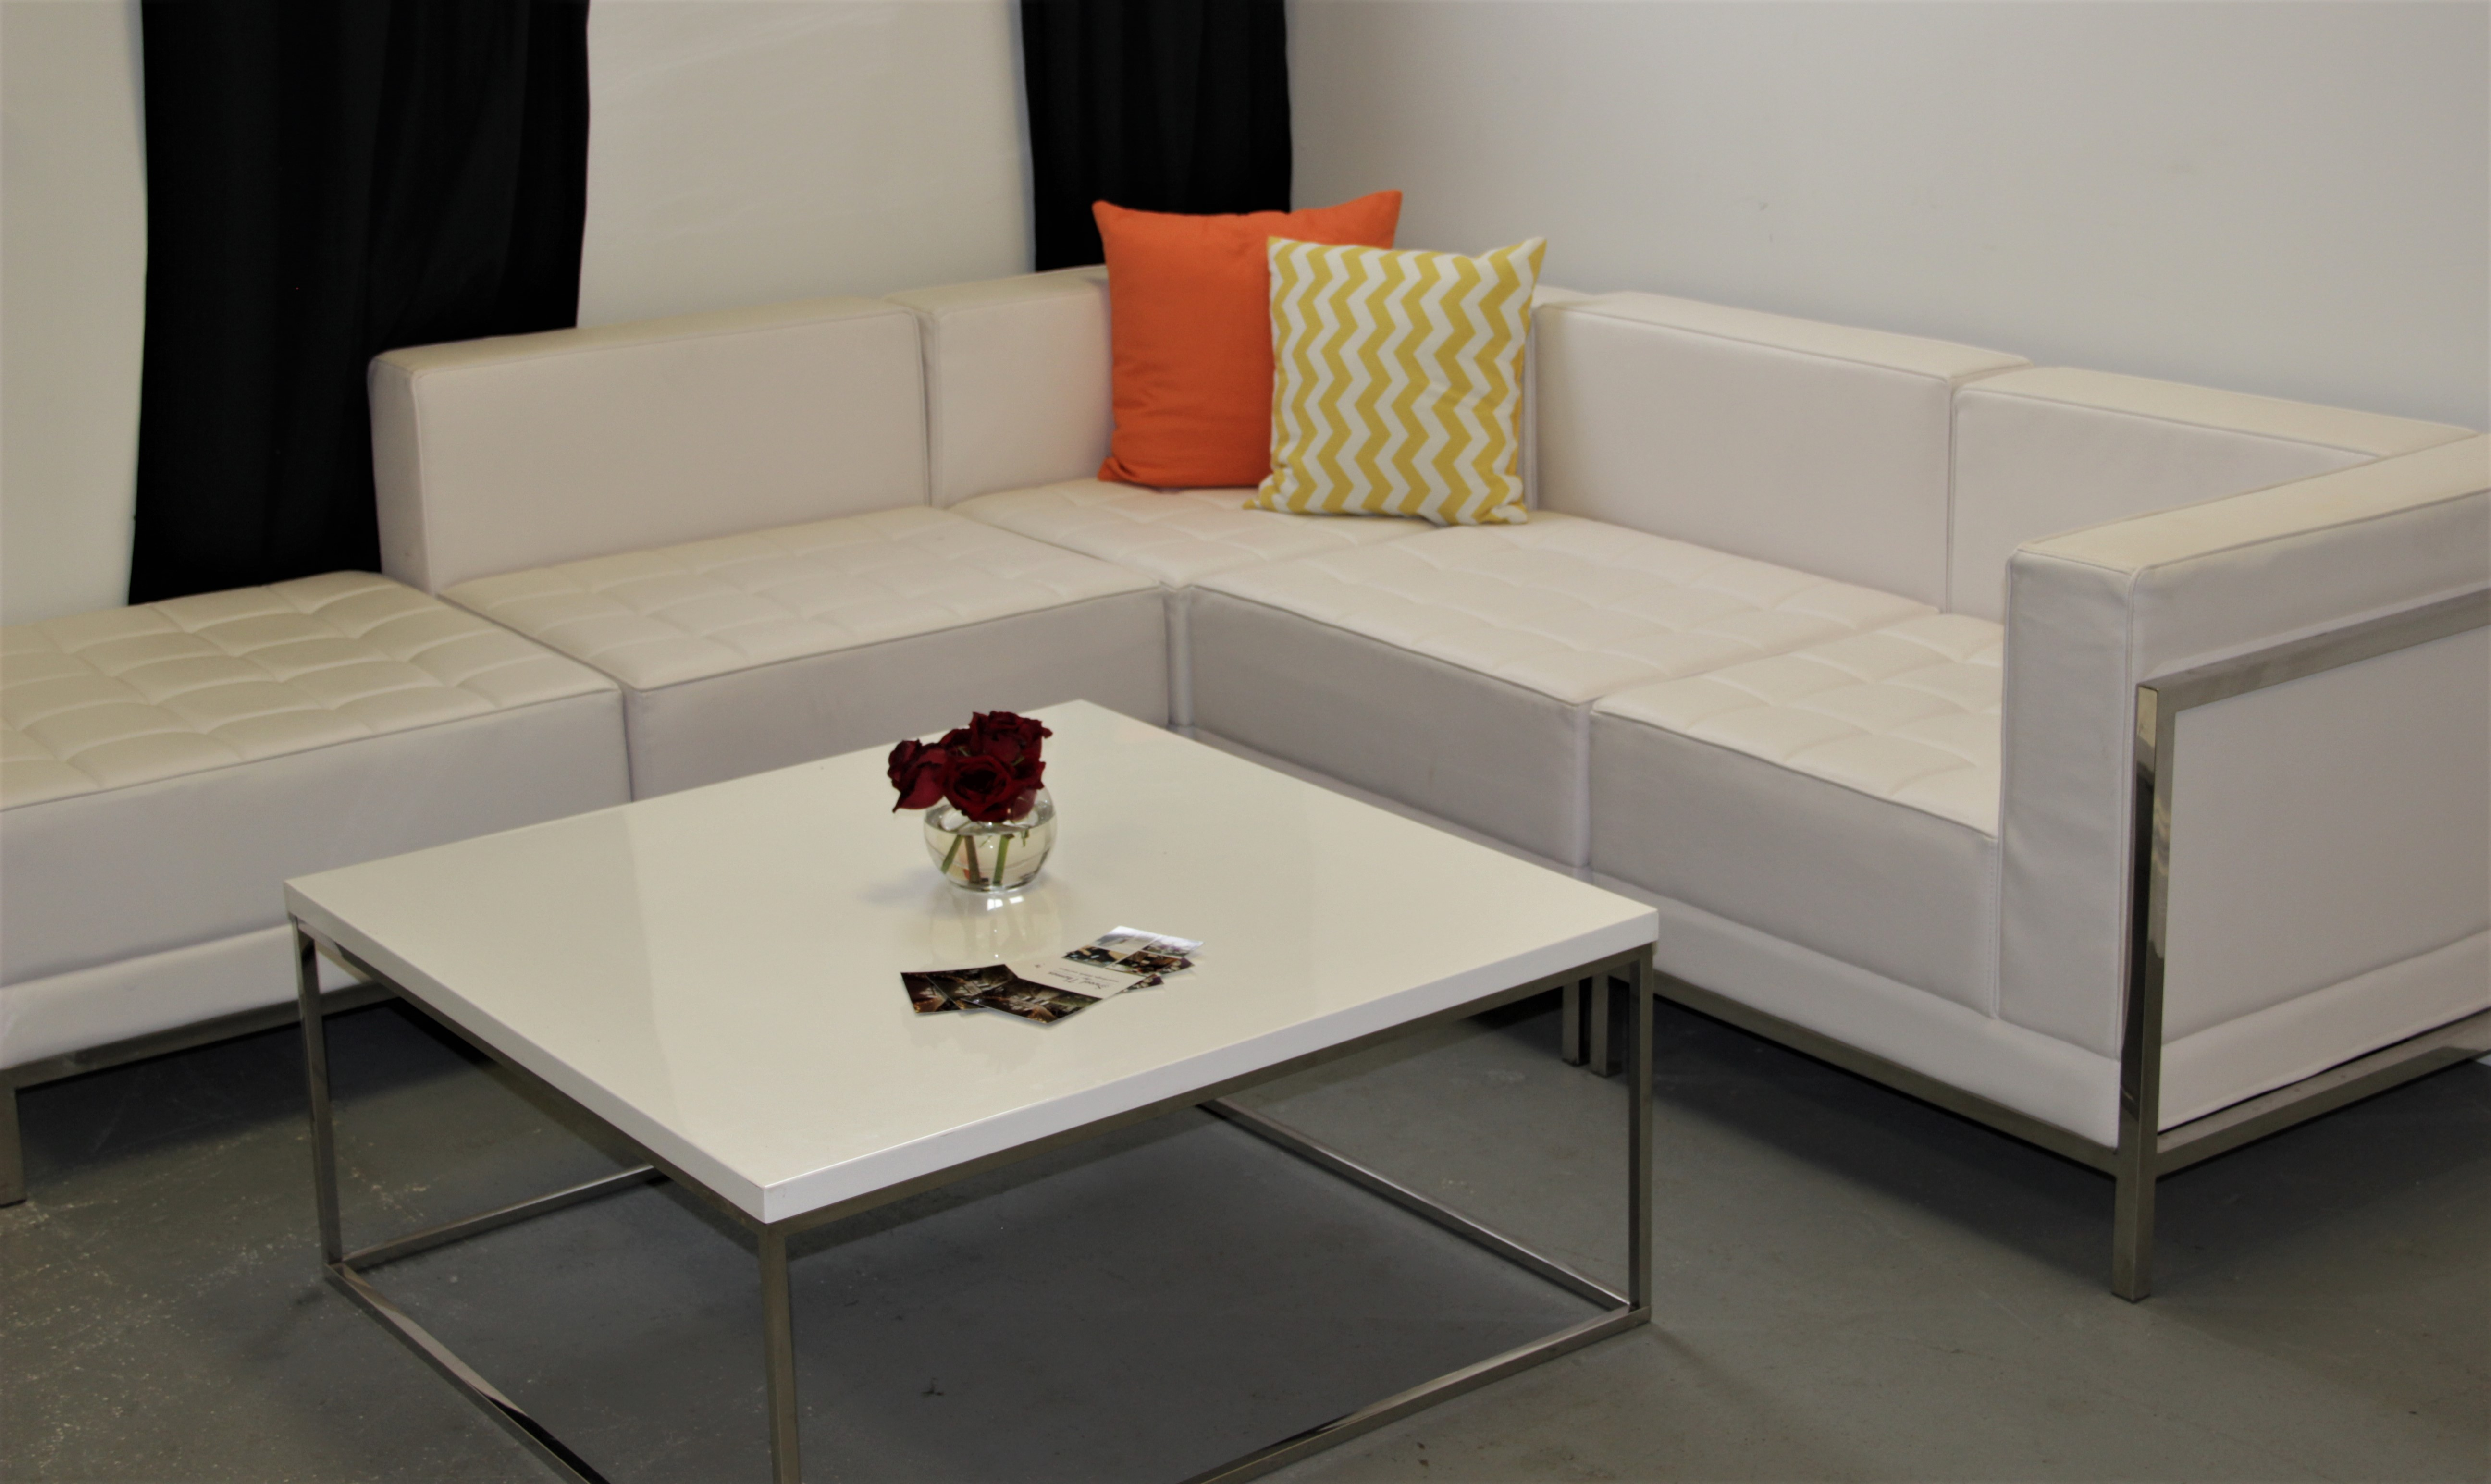 White Leather Lounge Furniture & Table price per piece